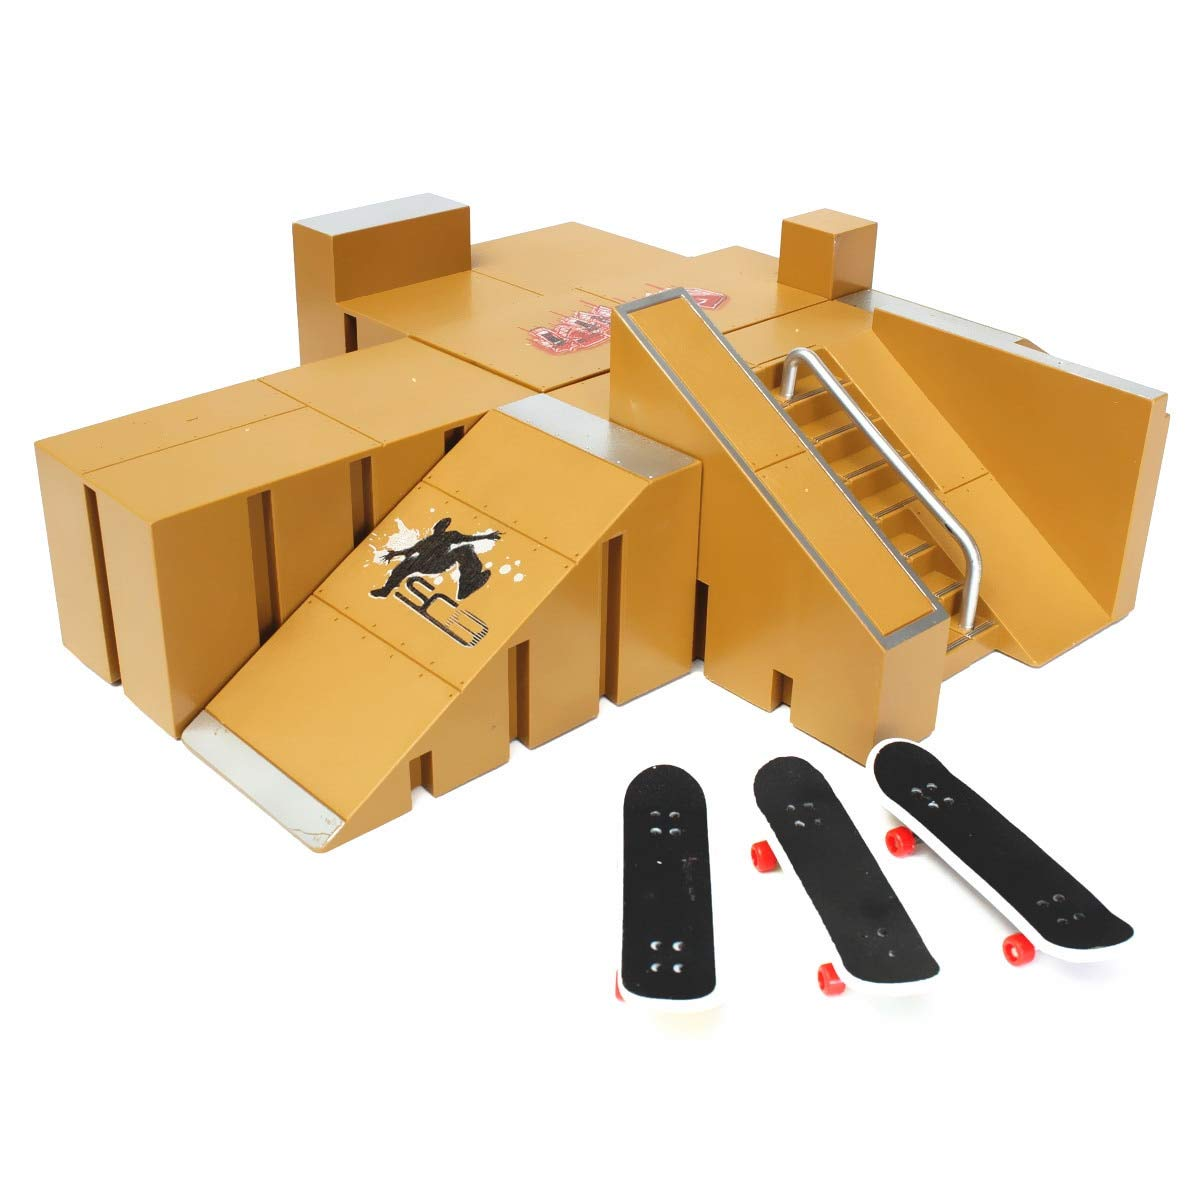 FUMAK New 3X Fingerboard Finger Board Skate Ramp Table Set Professional Platform Ultimate Parks 92A w/Box for Tech Deck Boarding Toy